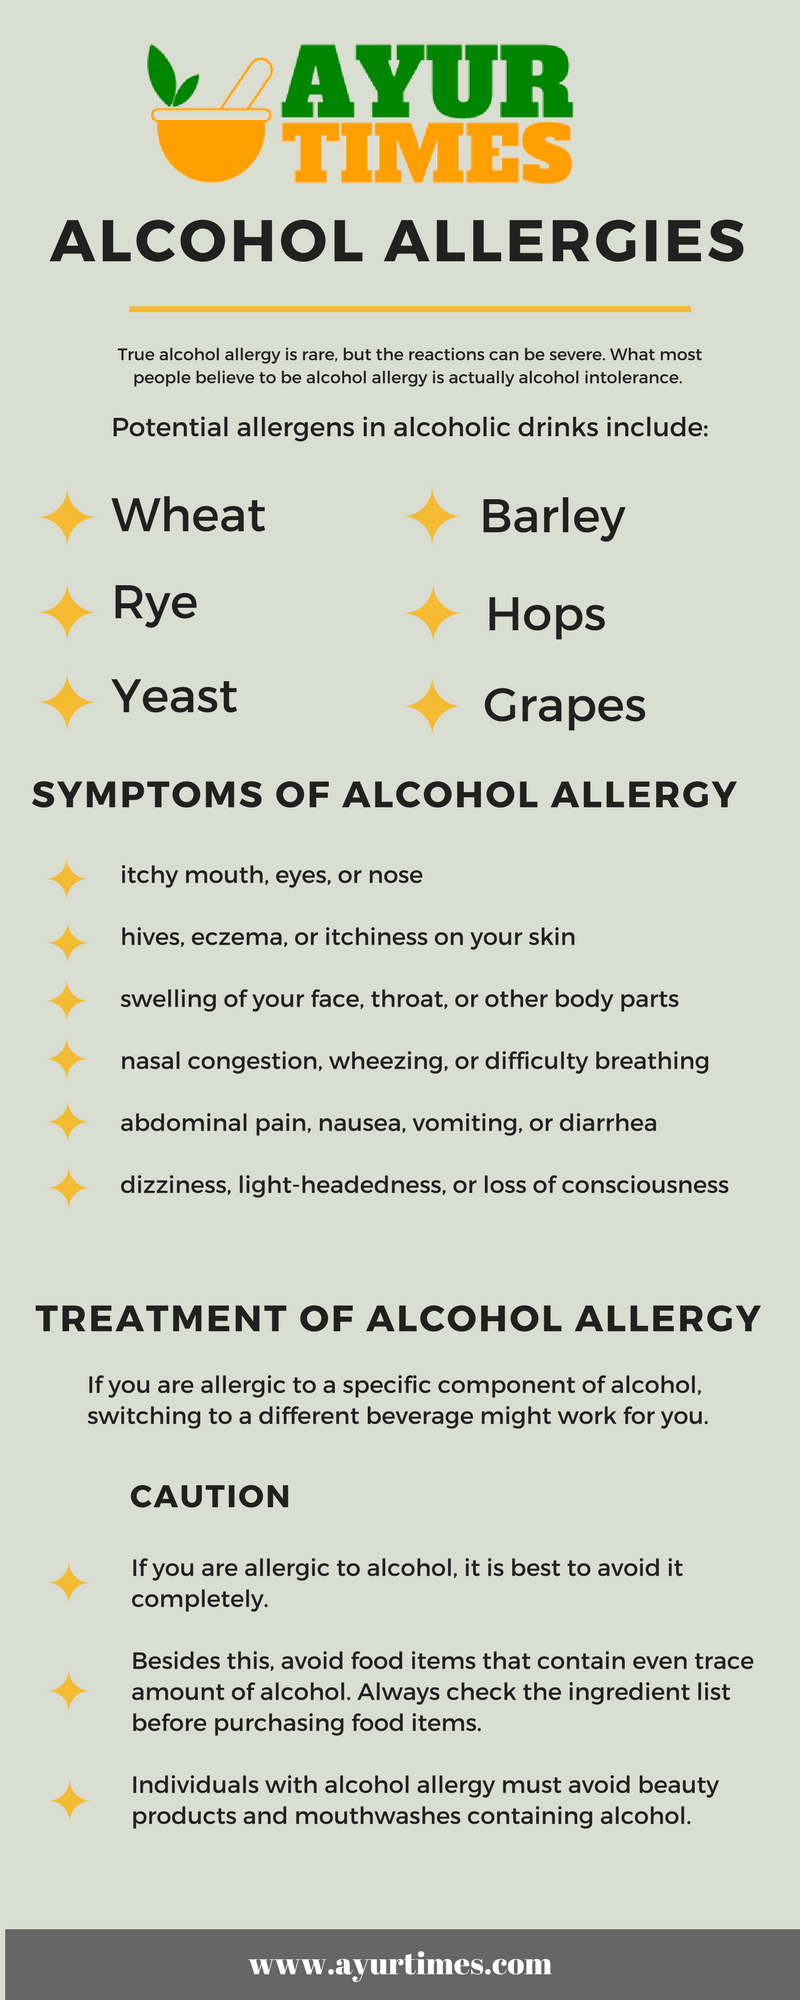 Alcoholic Drinks Are Made Up Of Grains Yeast Chemicals And Non Organic Preservatives Some People Who Ar Alcohol Allergy Symptoms Alcohol Alcohol Intolerance